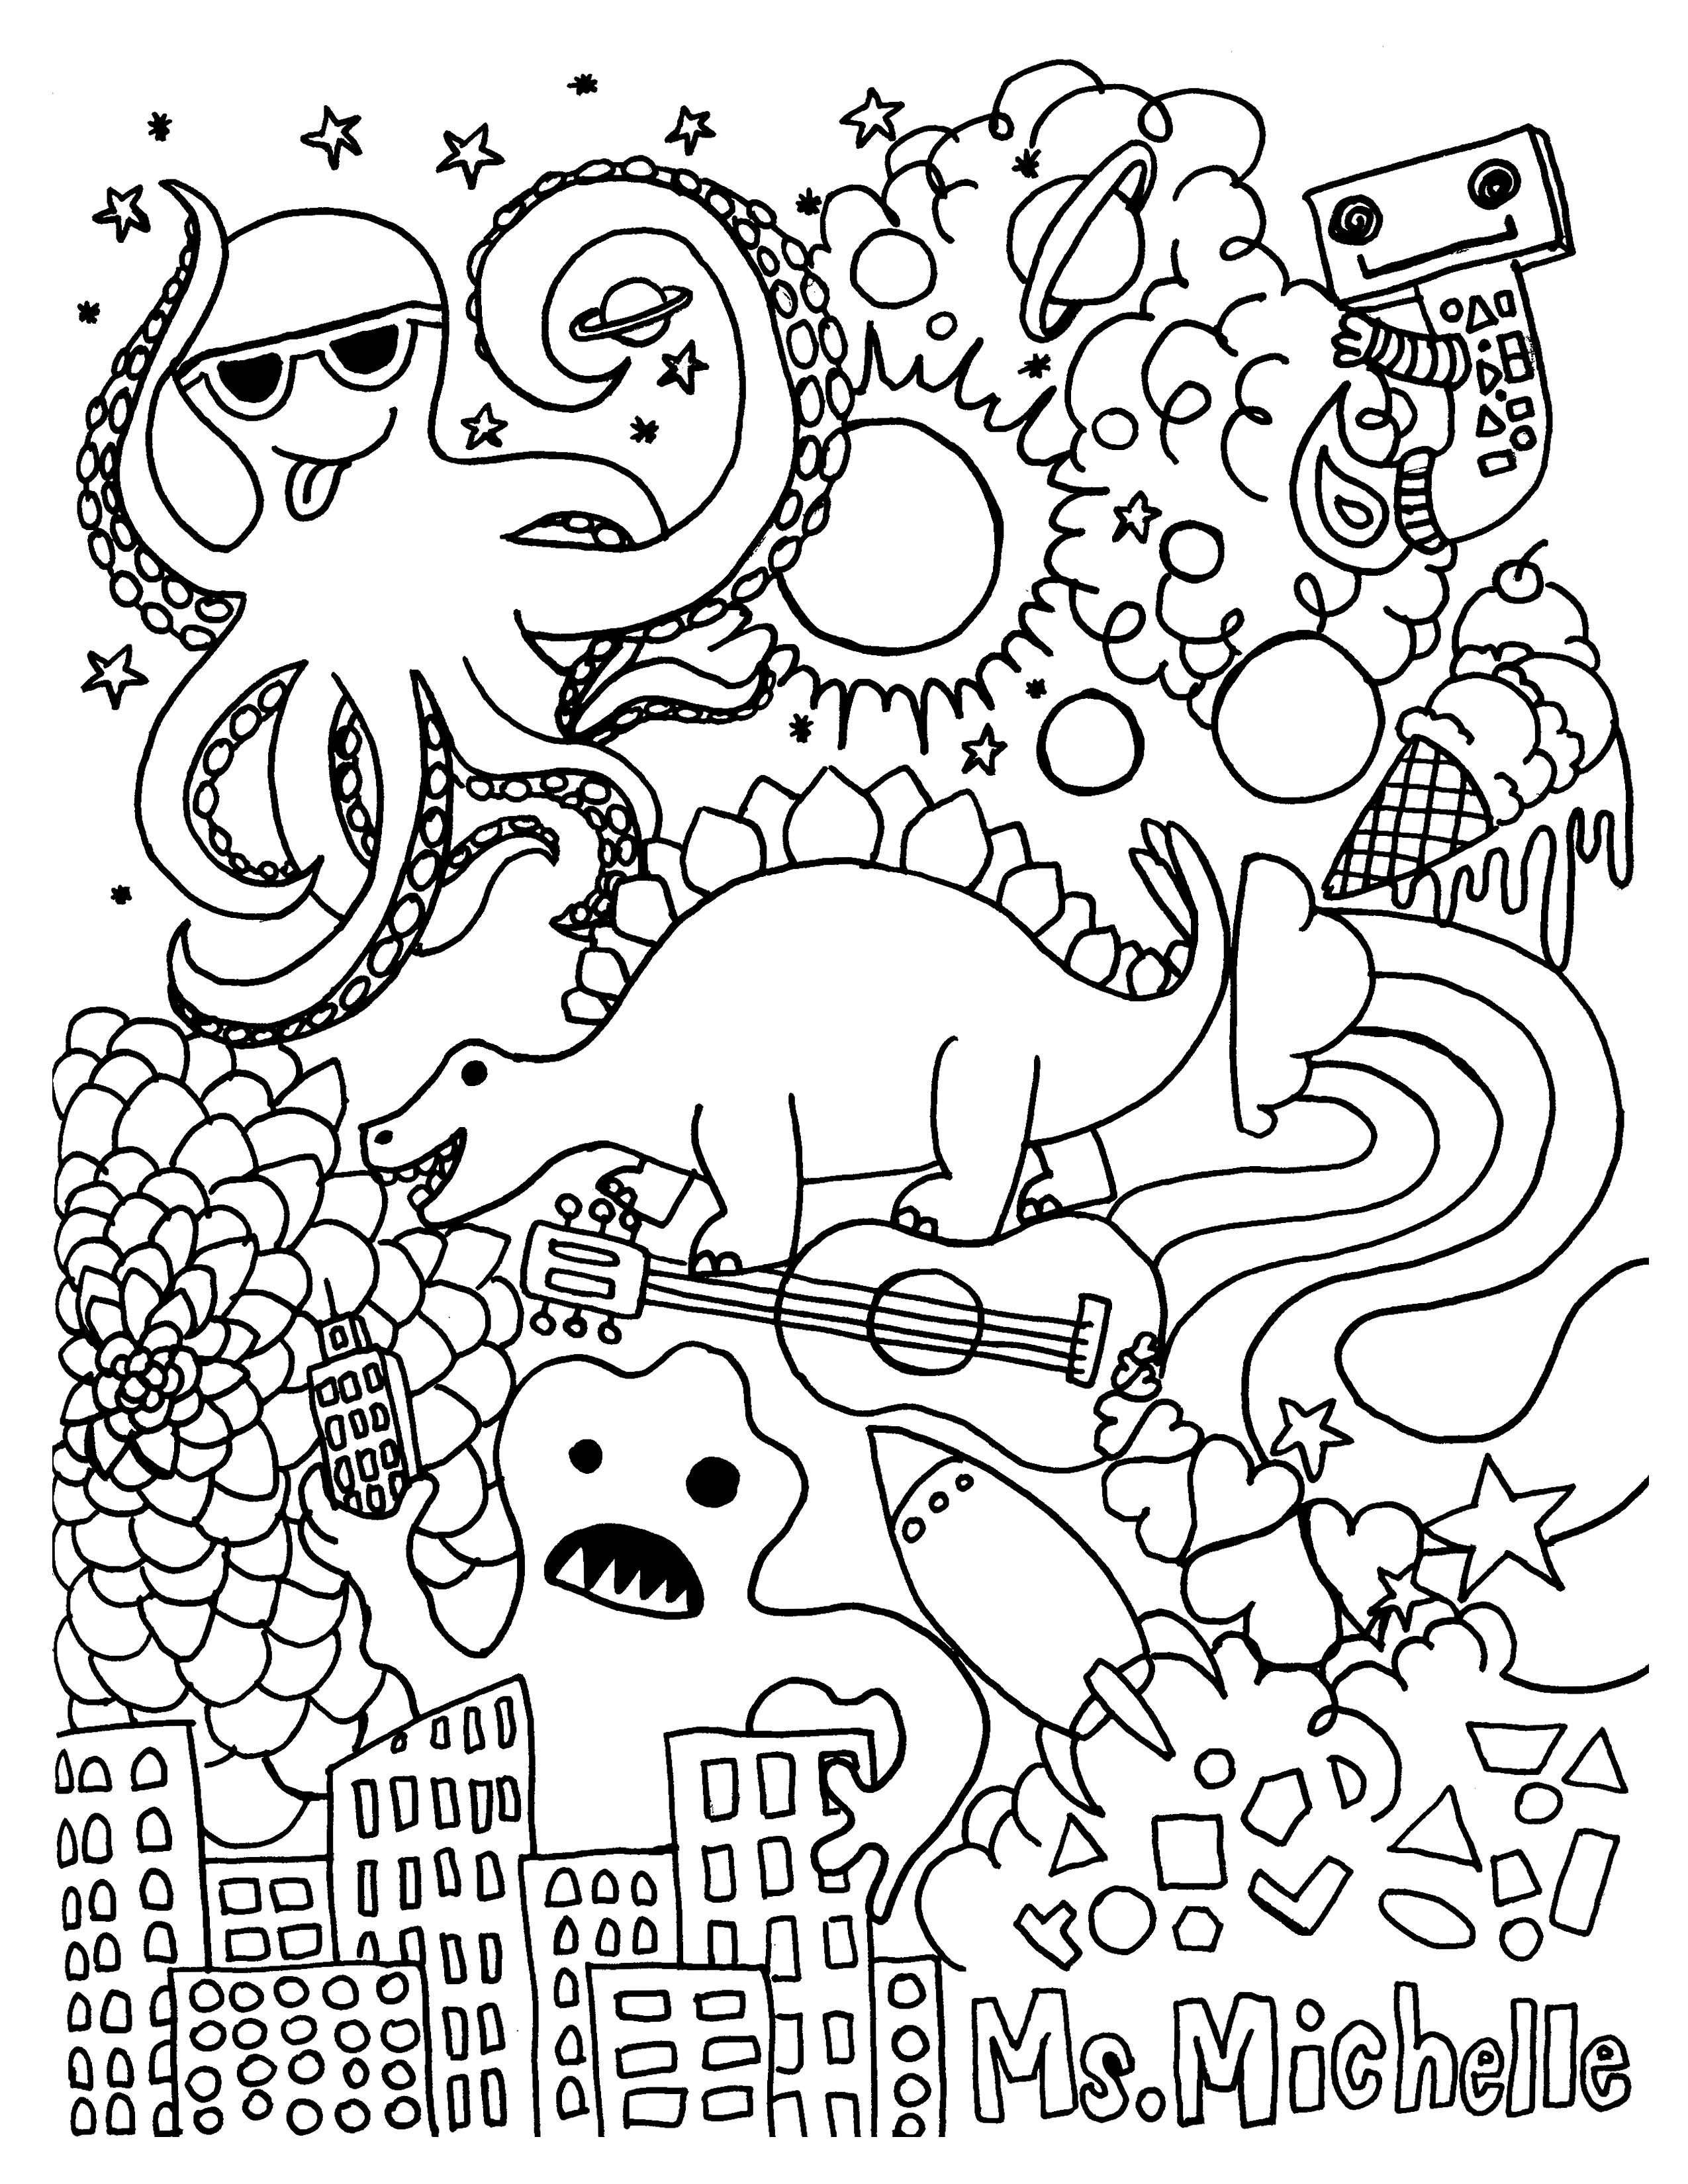 Christmas Colouring Pages Nativity With Color Page Coloring Religious Printable